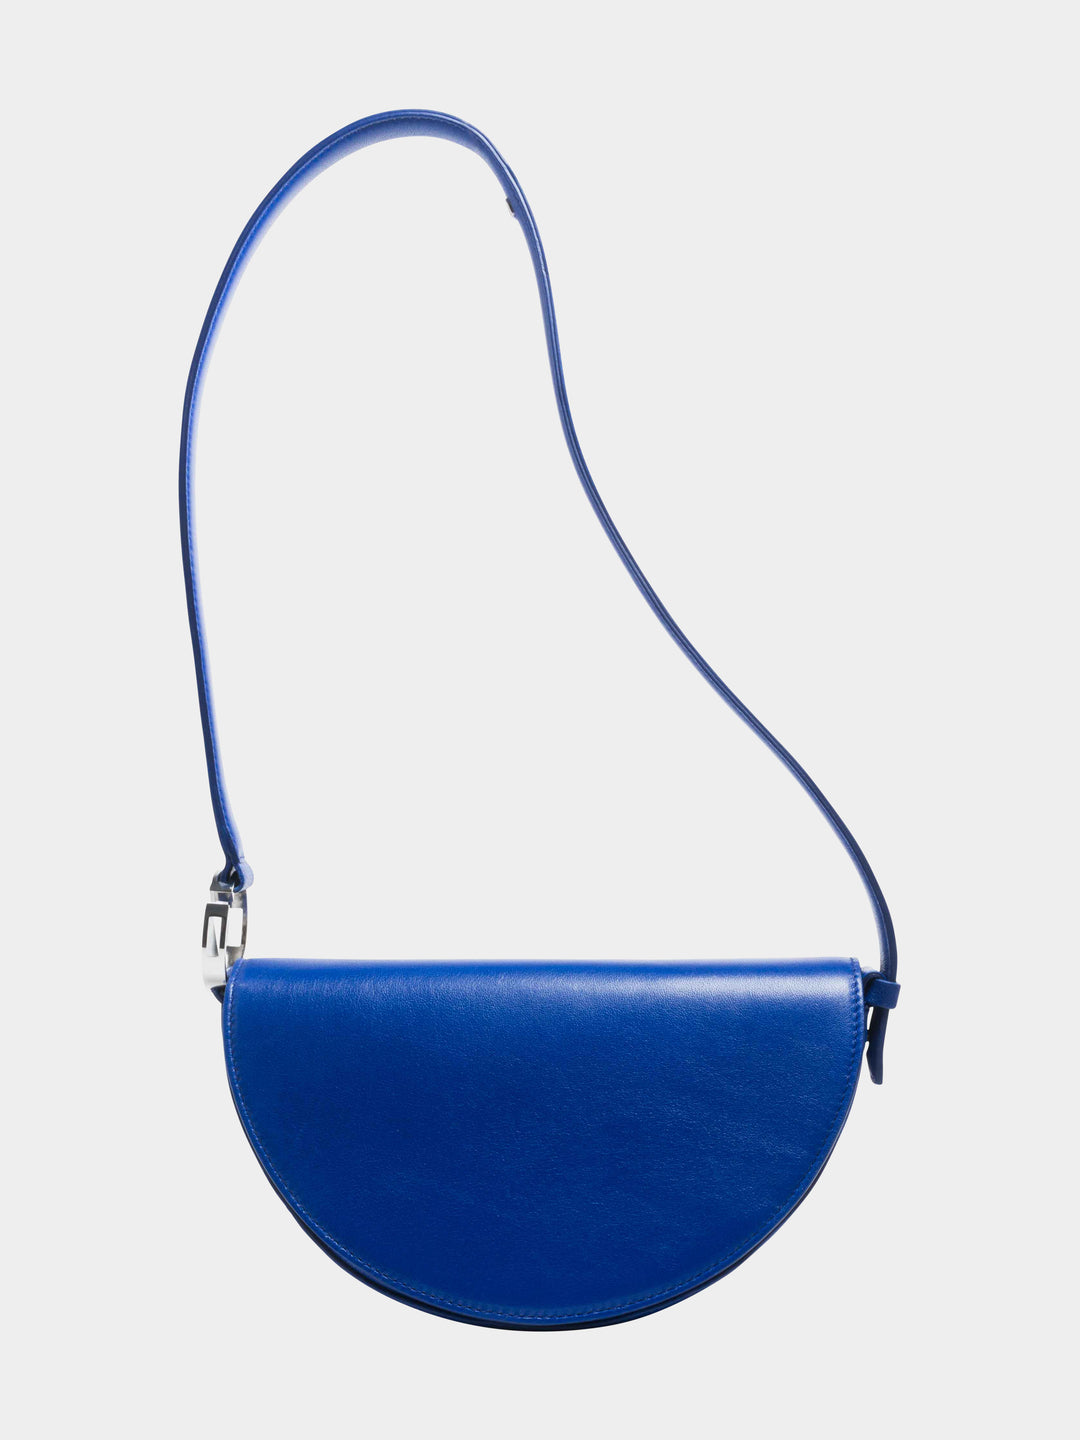 Dooz Aquarius Céleste leather handbag in color Cobalt (long strap)